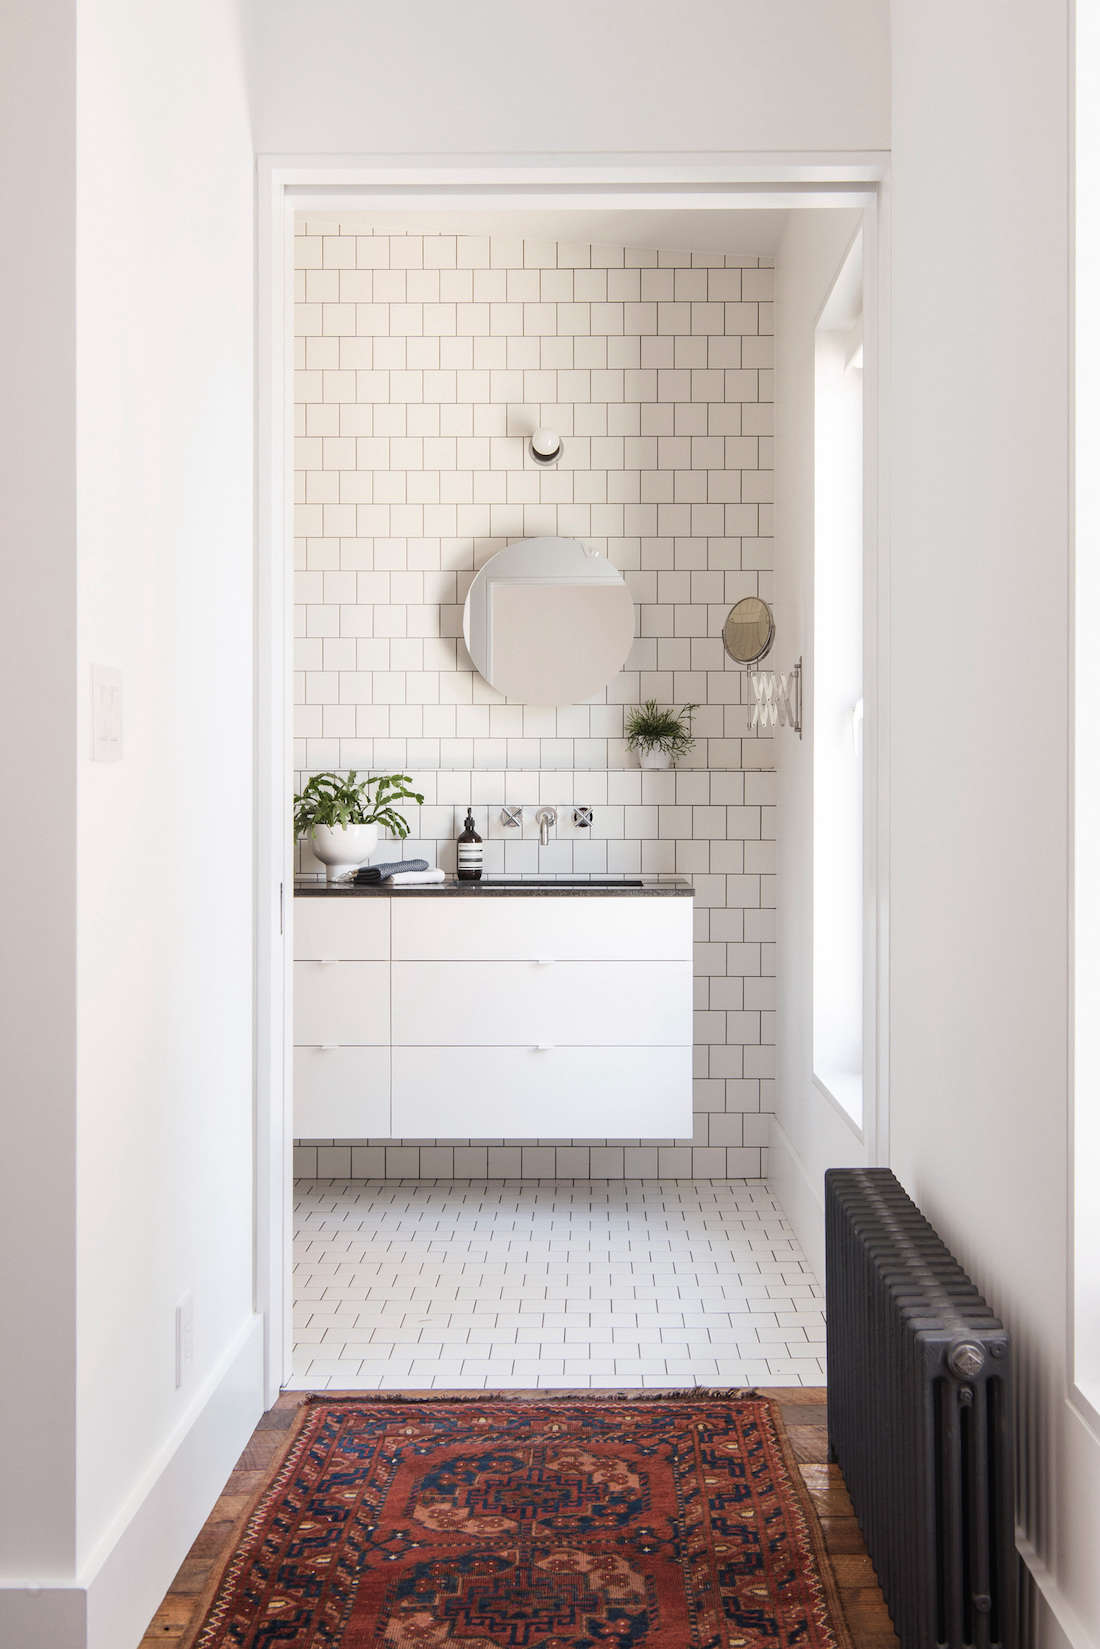 kohler kitchen faucets home depot corner nook a whole-house overhaul in brooklyn with high/low mix ...